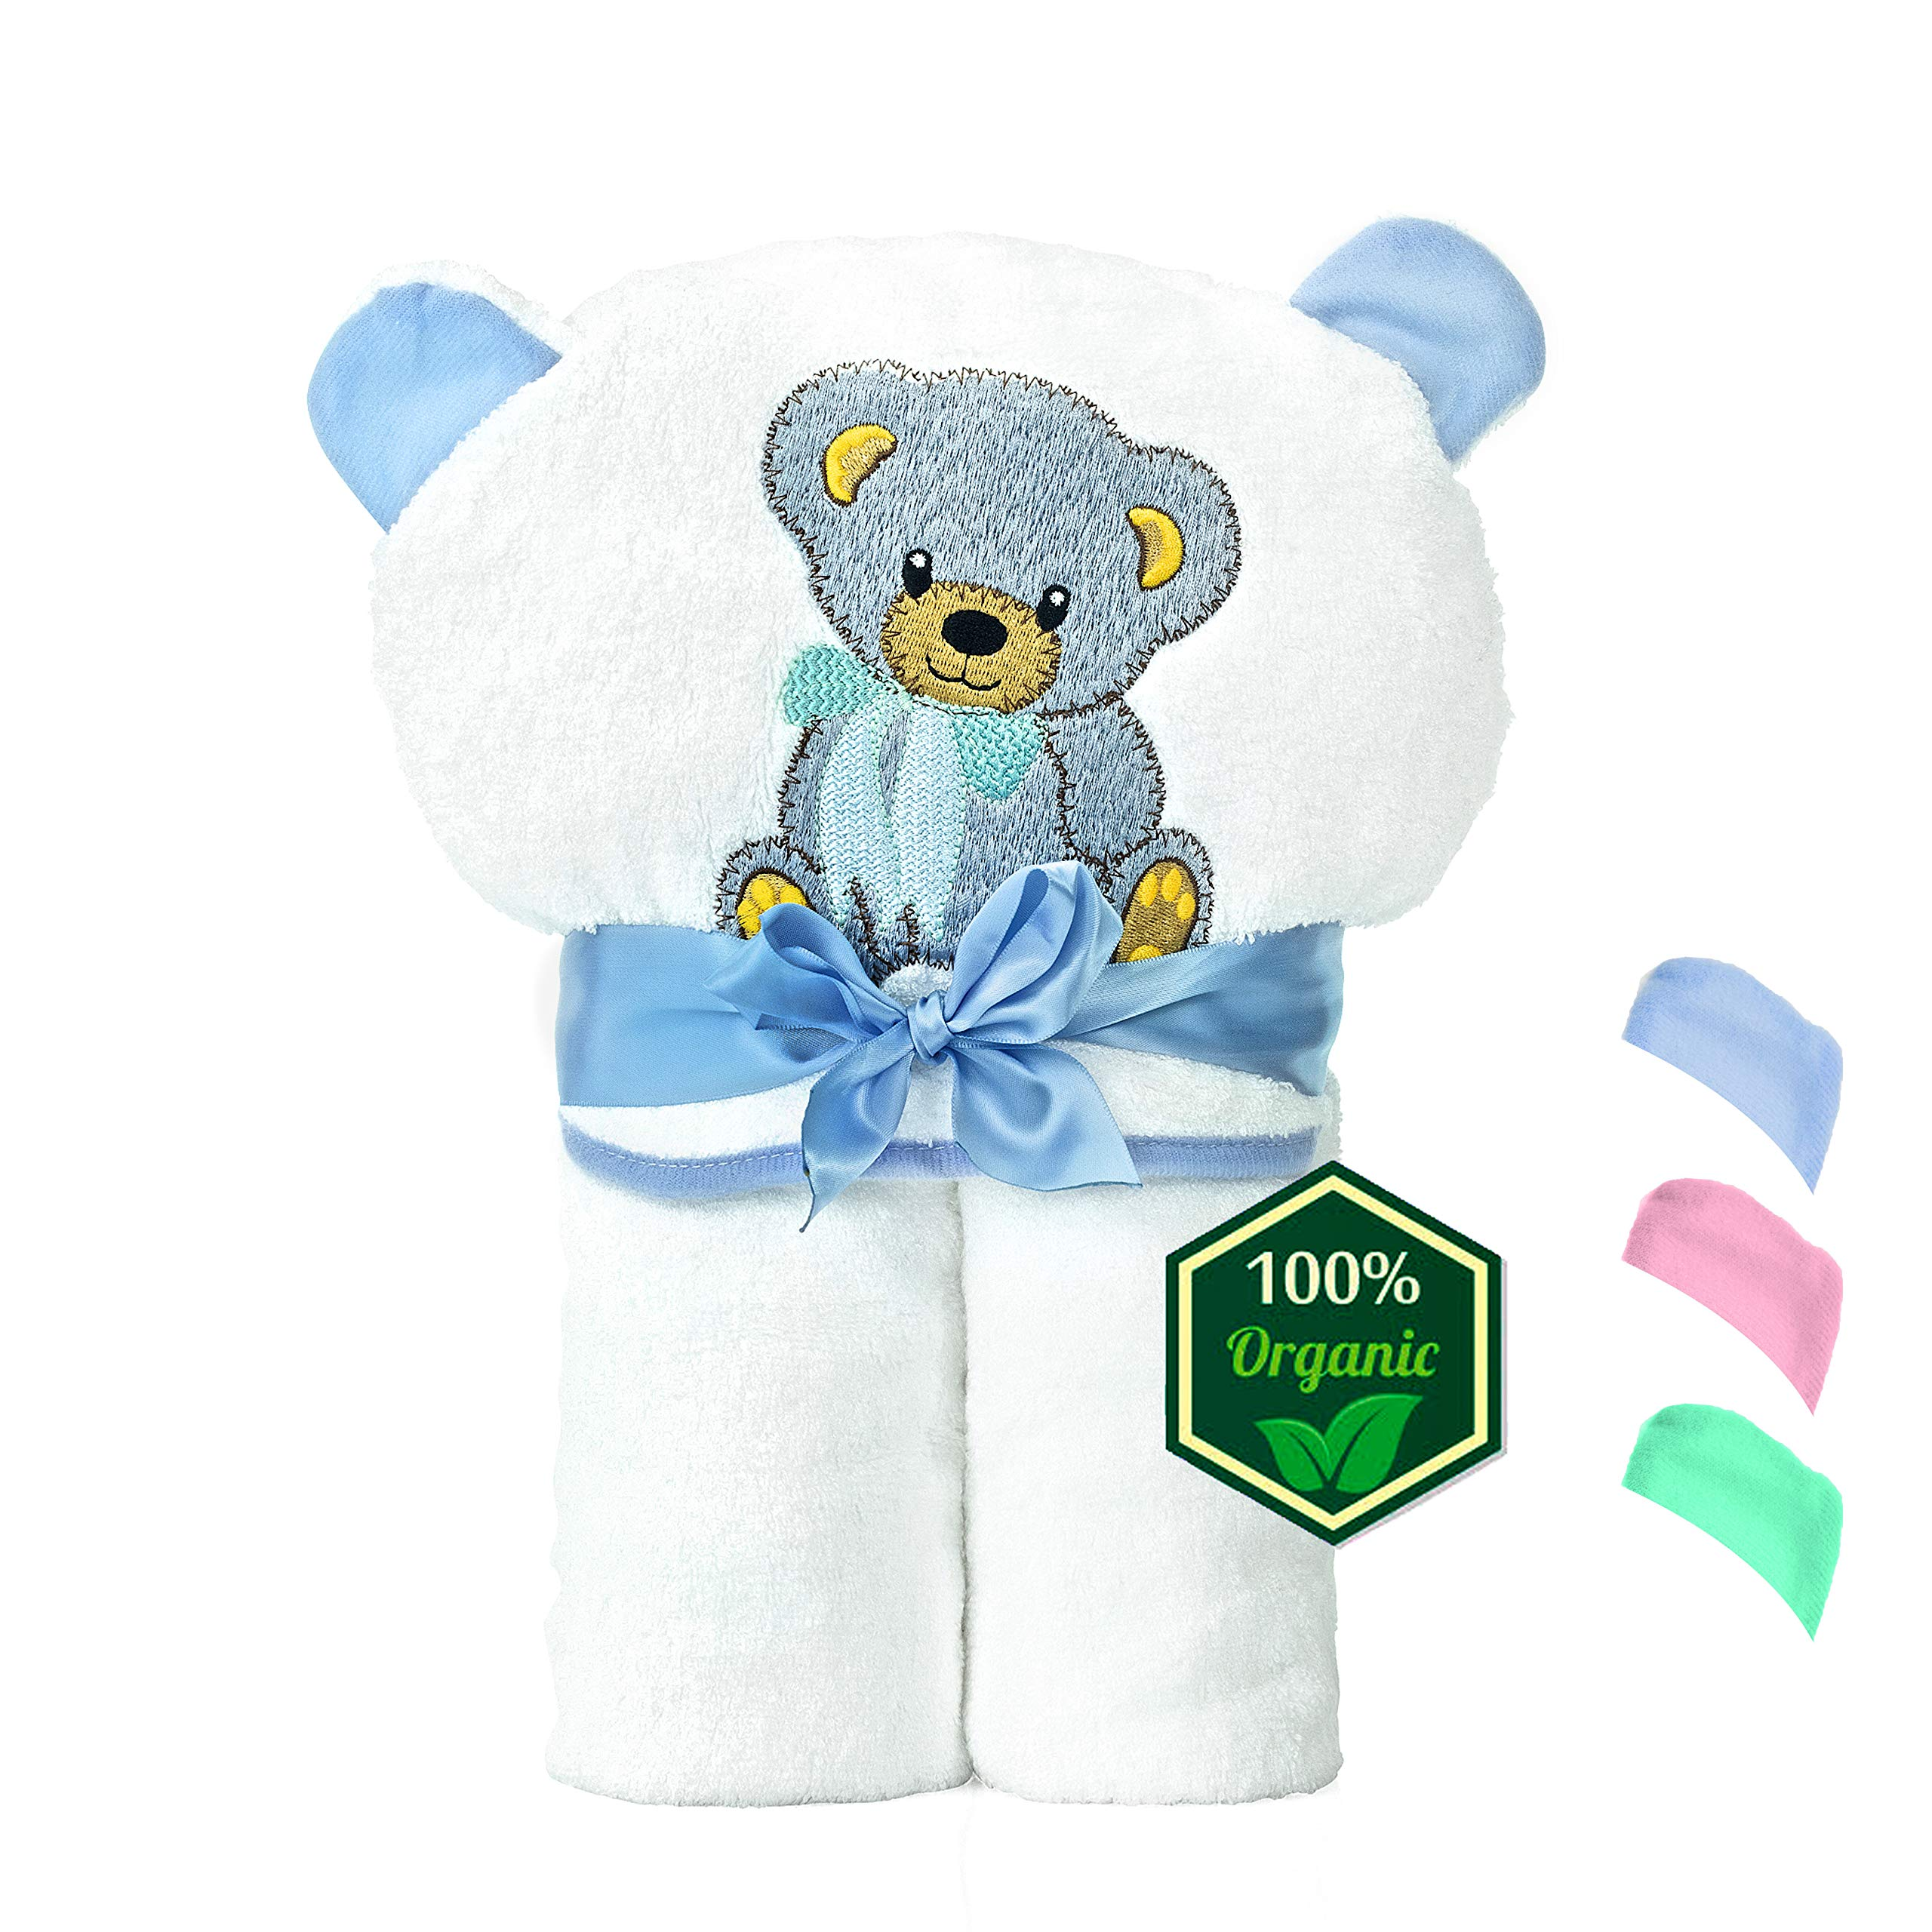 Organic Bamboo Hooded Baby Towel – Soft, Hooded Baby Bath Towels, Large Toddler Bath Towel, Perfect Baby Shower Gift for Baby Boys (Blue)